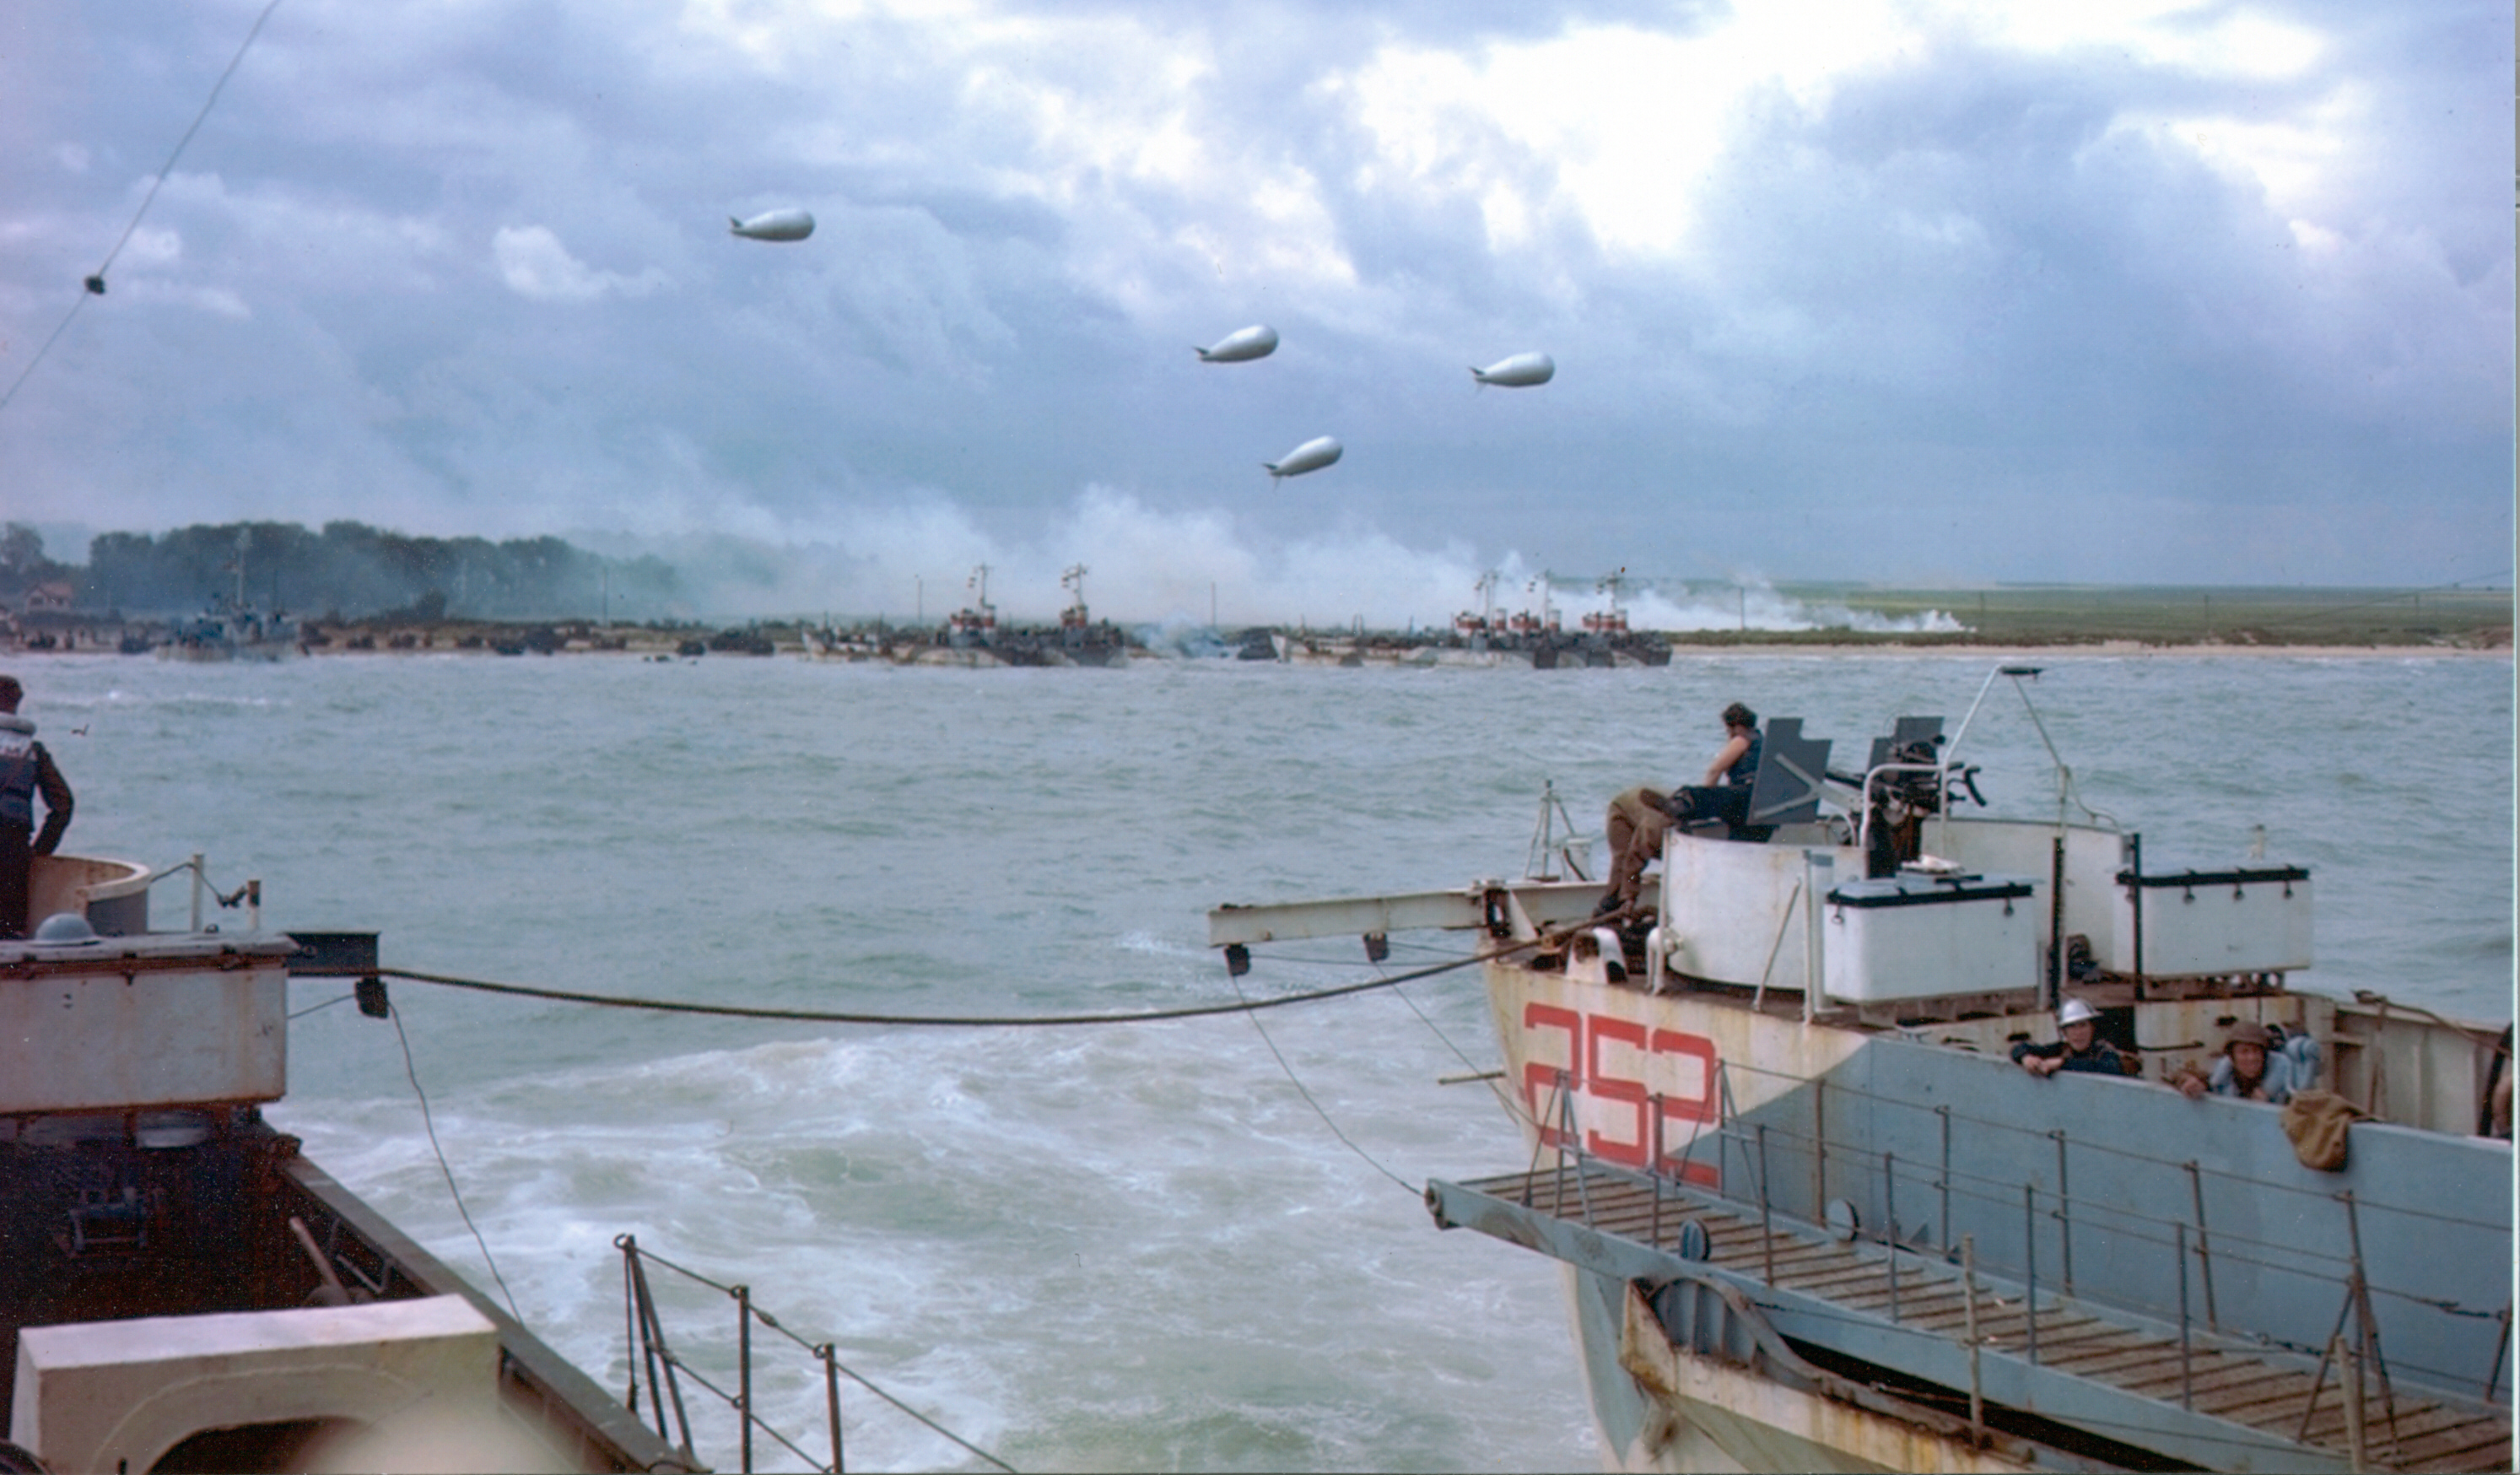 Colour photograph. A landing craft approaches Juno beach on the afternoon of D-Day. Source: Library and Archives Canada CT 299 / Courtesy of the Juno Beach Centre Association